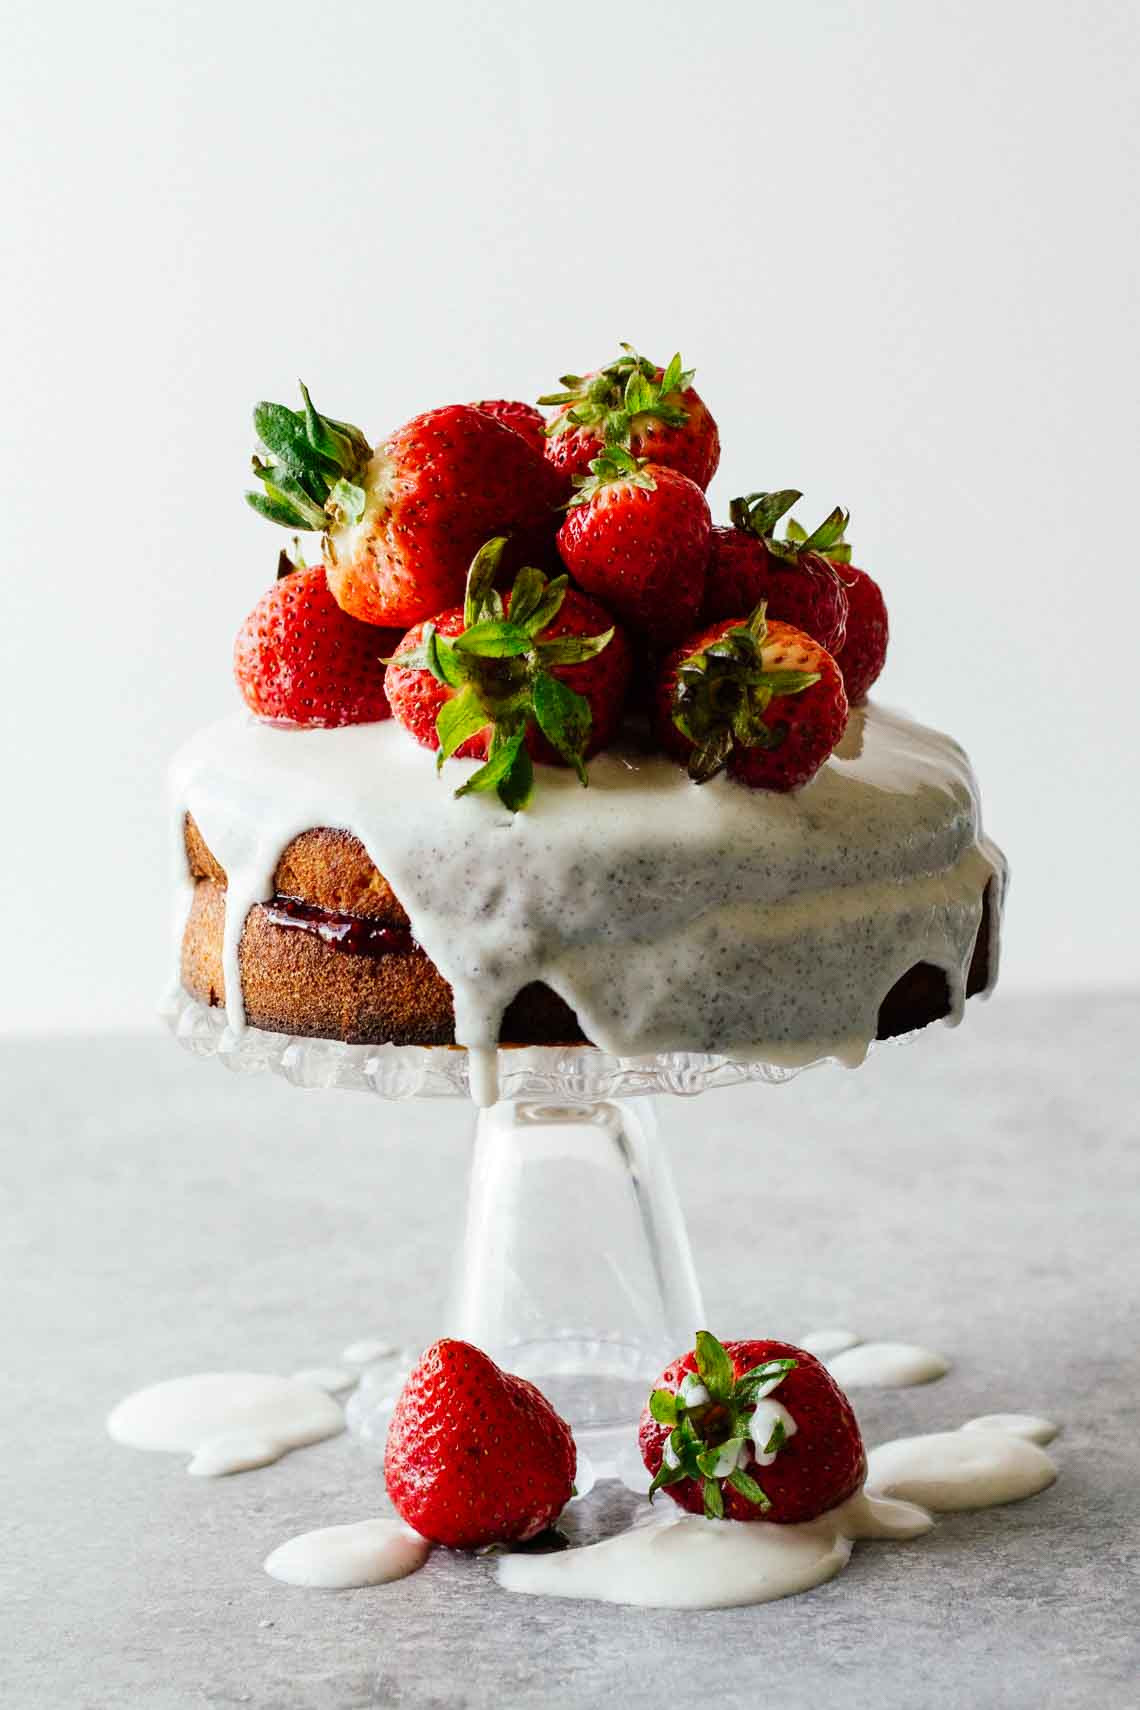 Healthy Strawberry Shortcake the Best Healthy Strawberry Shortcake W Sugar Free Glaze Jar